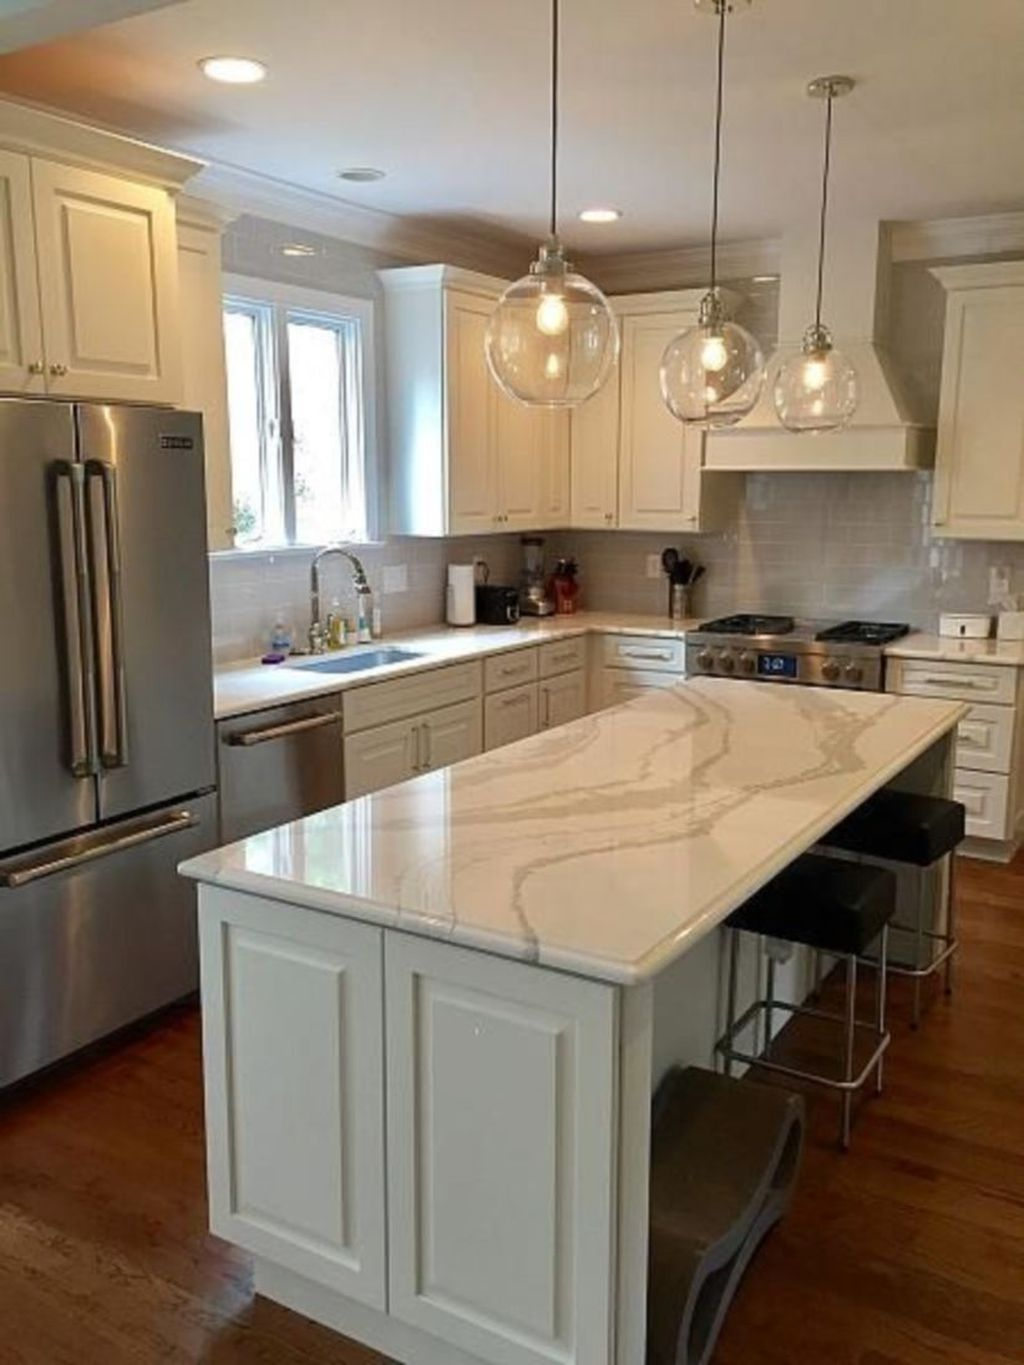 34 Nice Kitchen Island Design Ideas That You Will Want